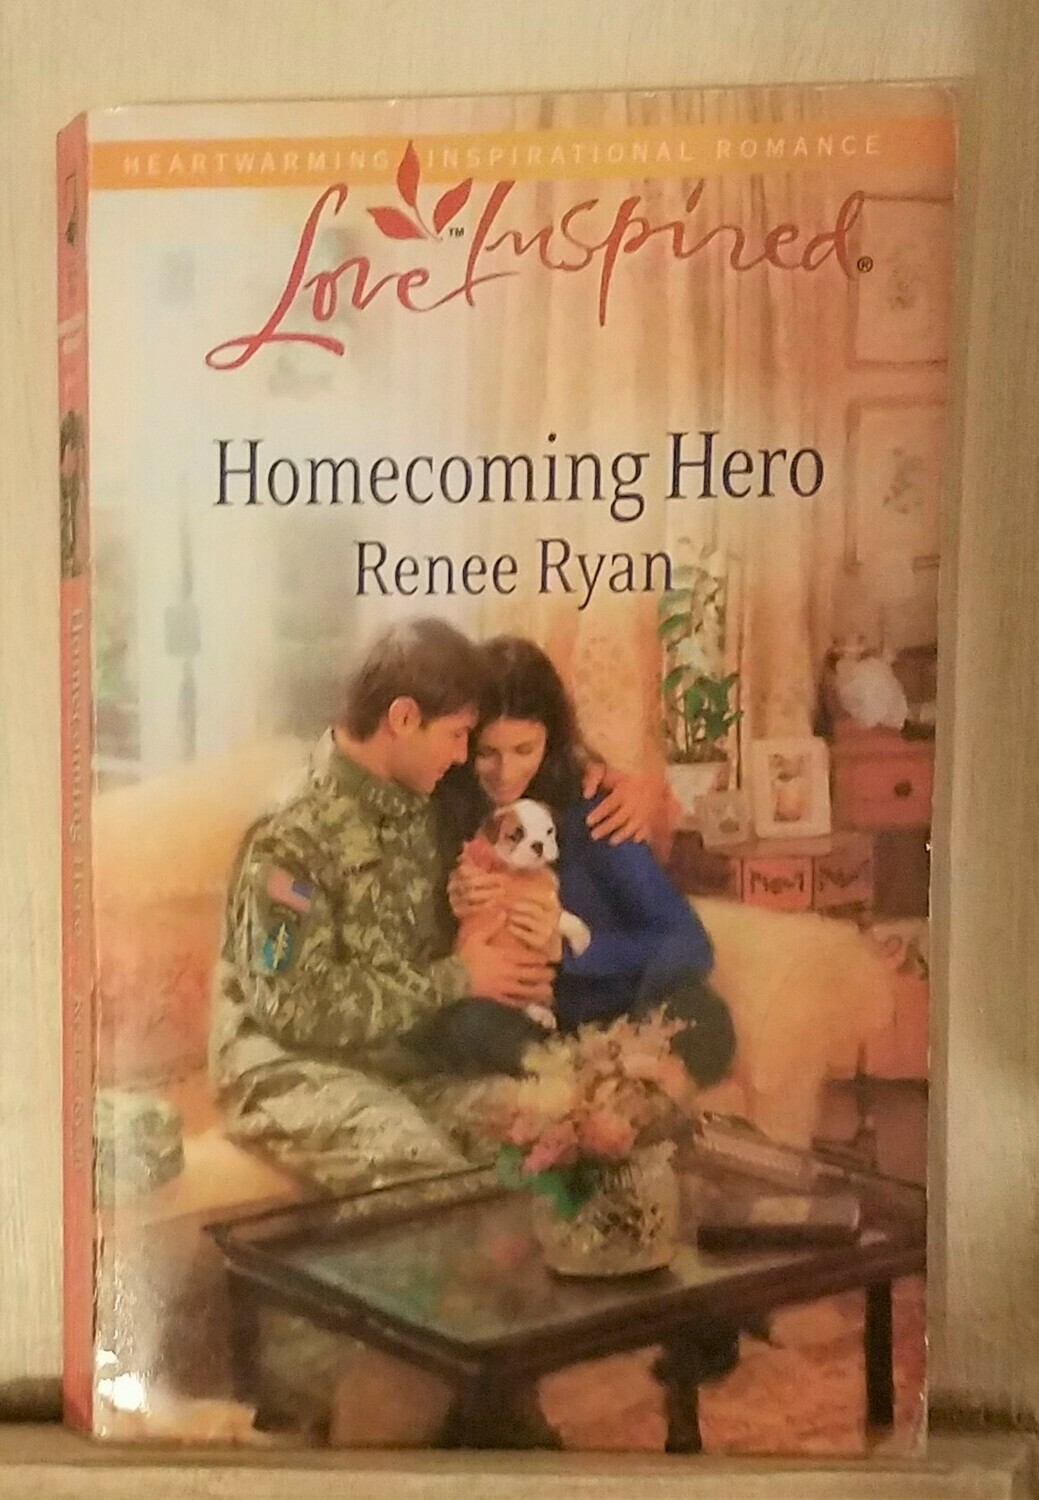 Homecoming Hero by Renee Ryan